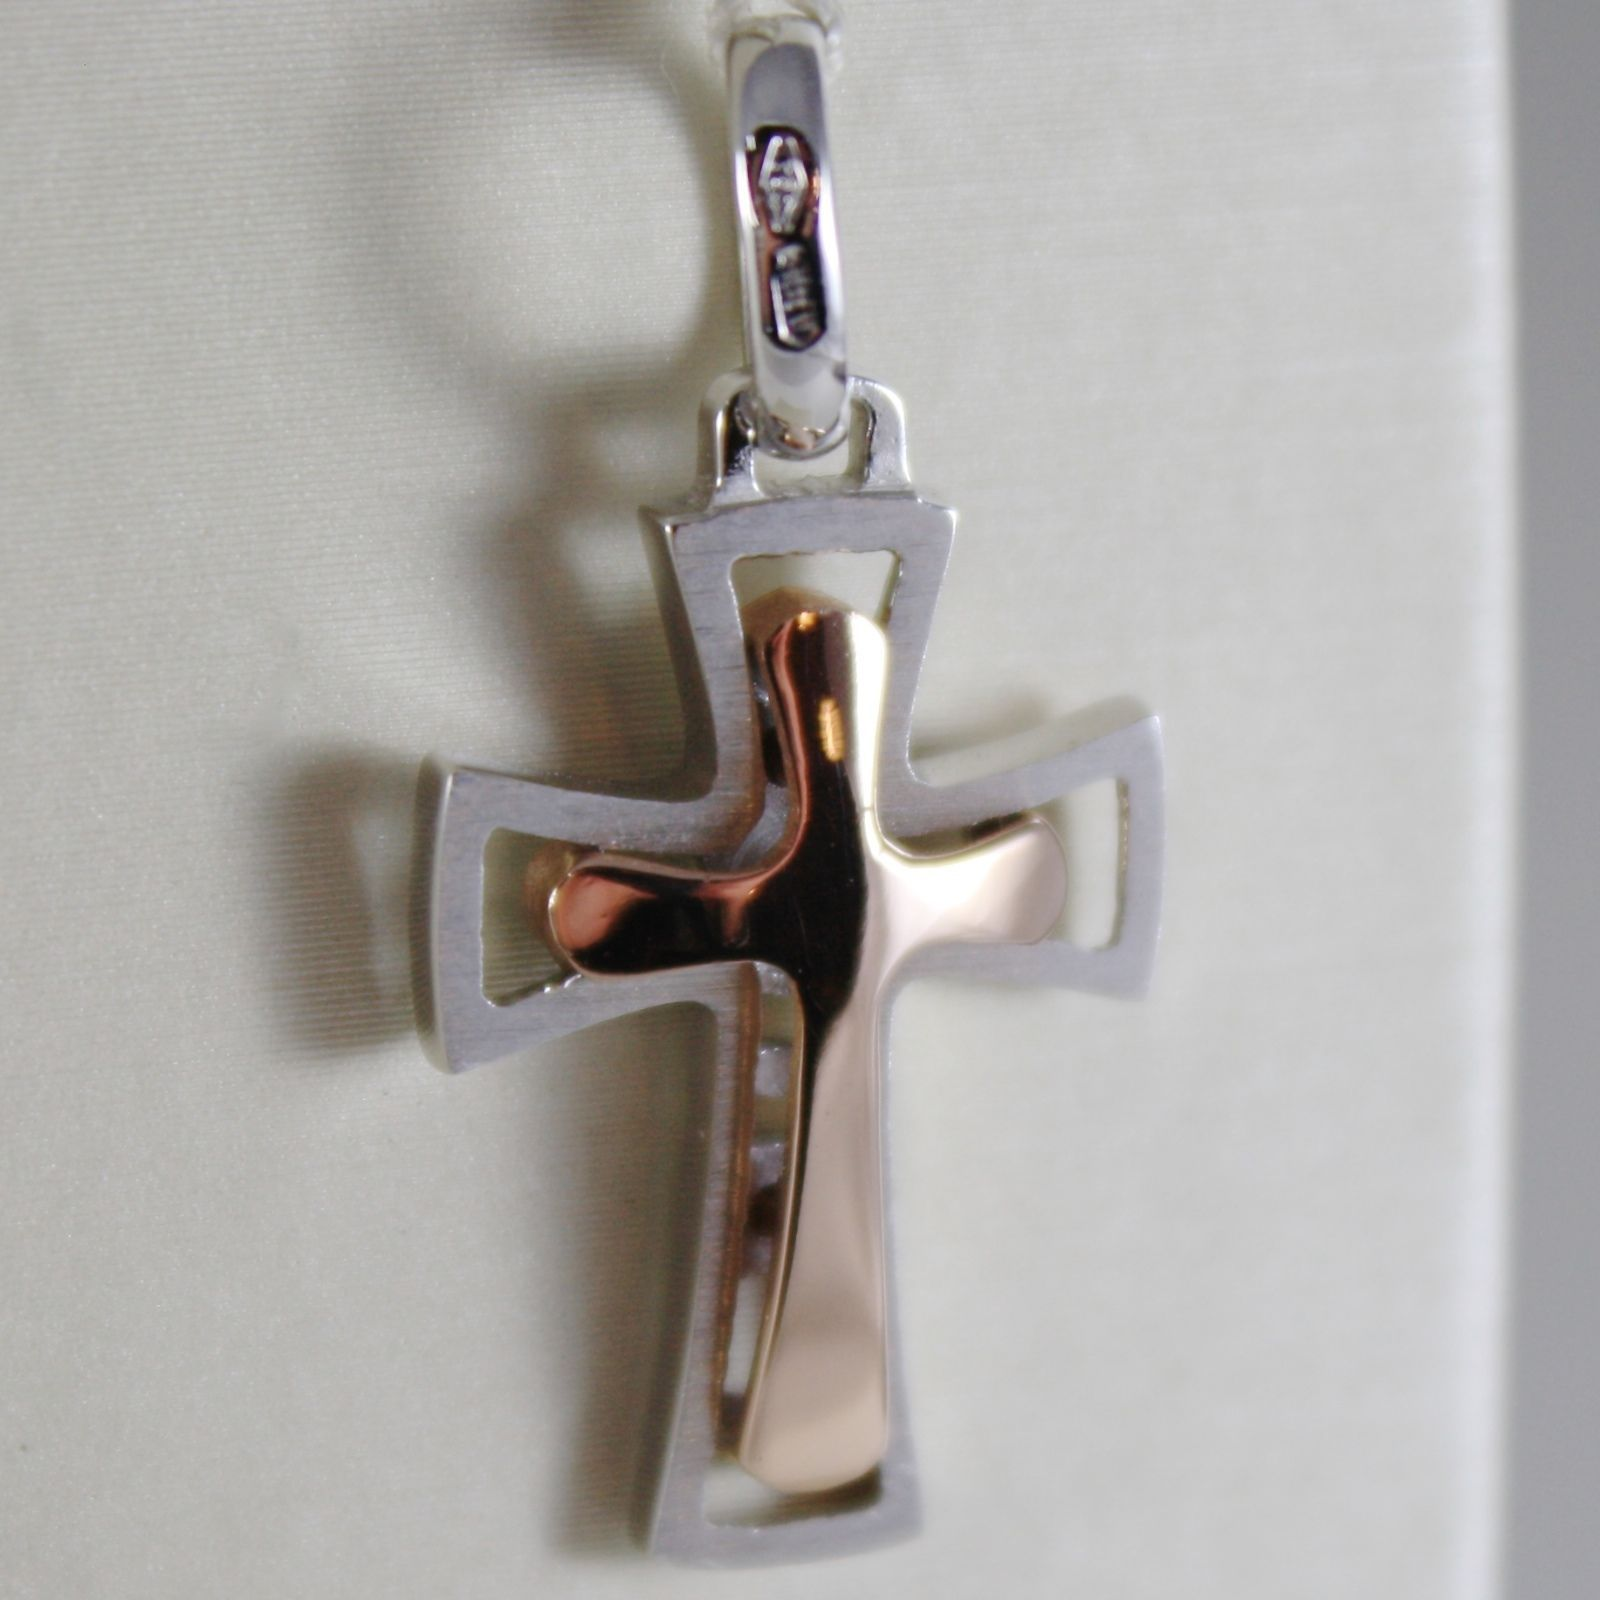 18K ROSE WHITE GOLD CROSS, SHINY BRIGHT AND SATIN, 1.06 INCHES, MADE IN ITALY